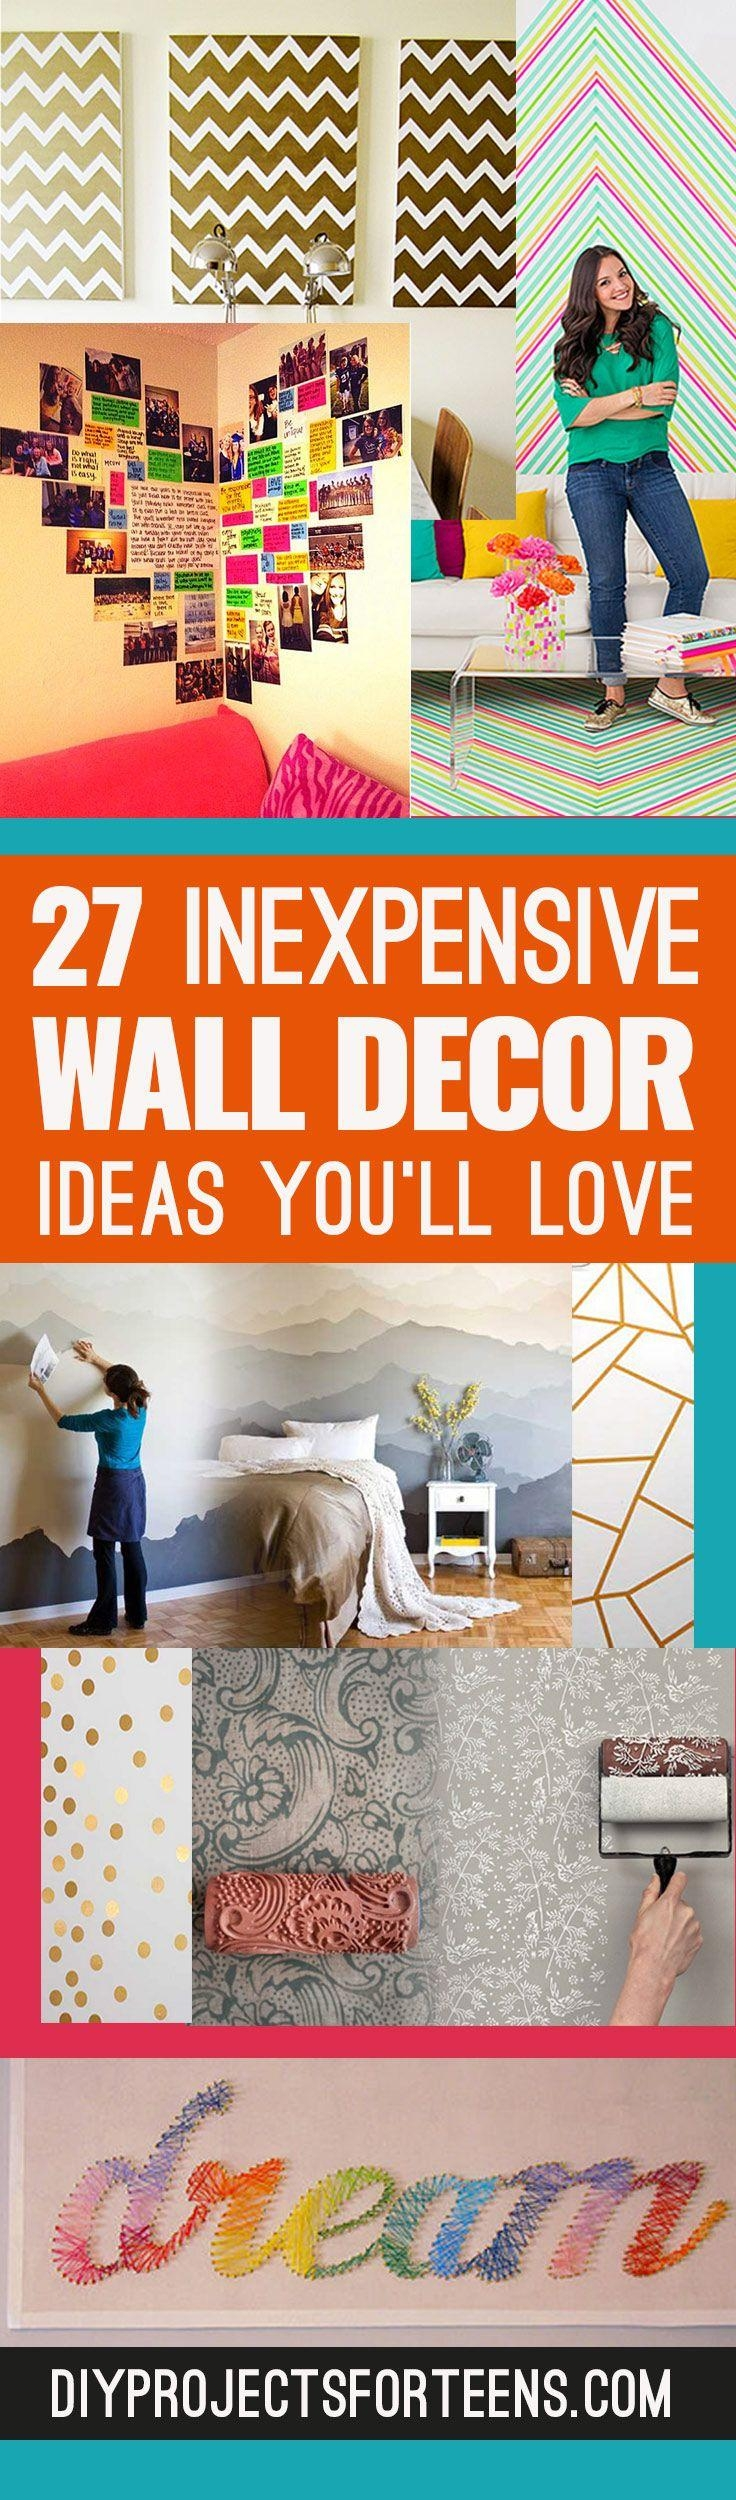 Best 25+ Family Wall Art Ideas On Pinterest | Family Wall Photos Pertaining To Brother Definition Wall Art (Image 7 of 20)